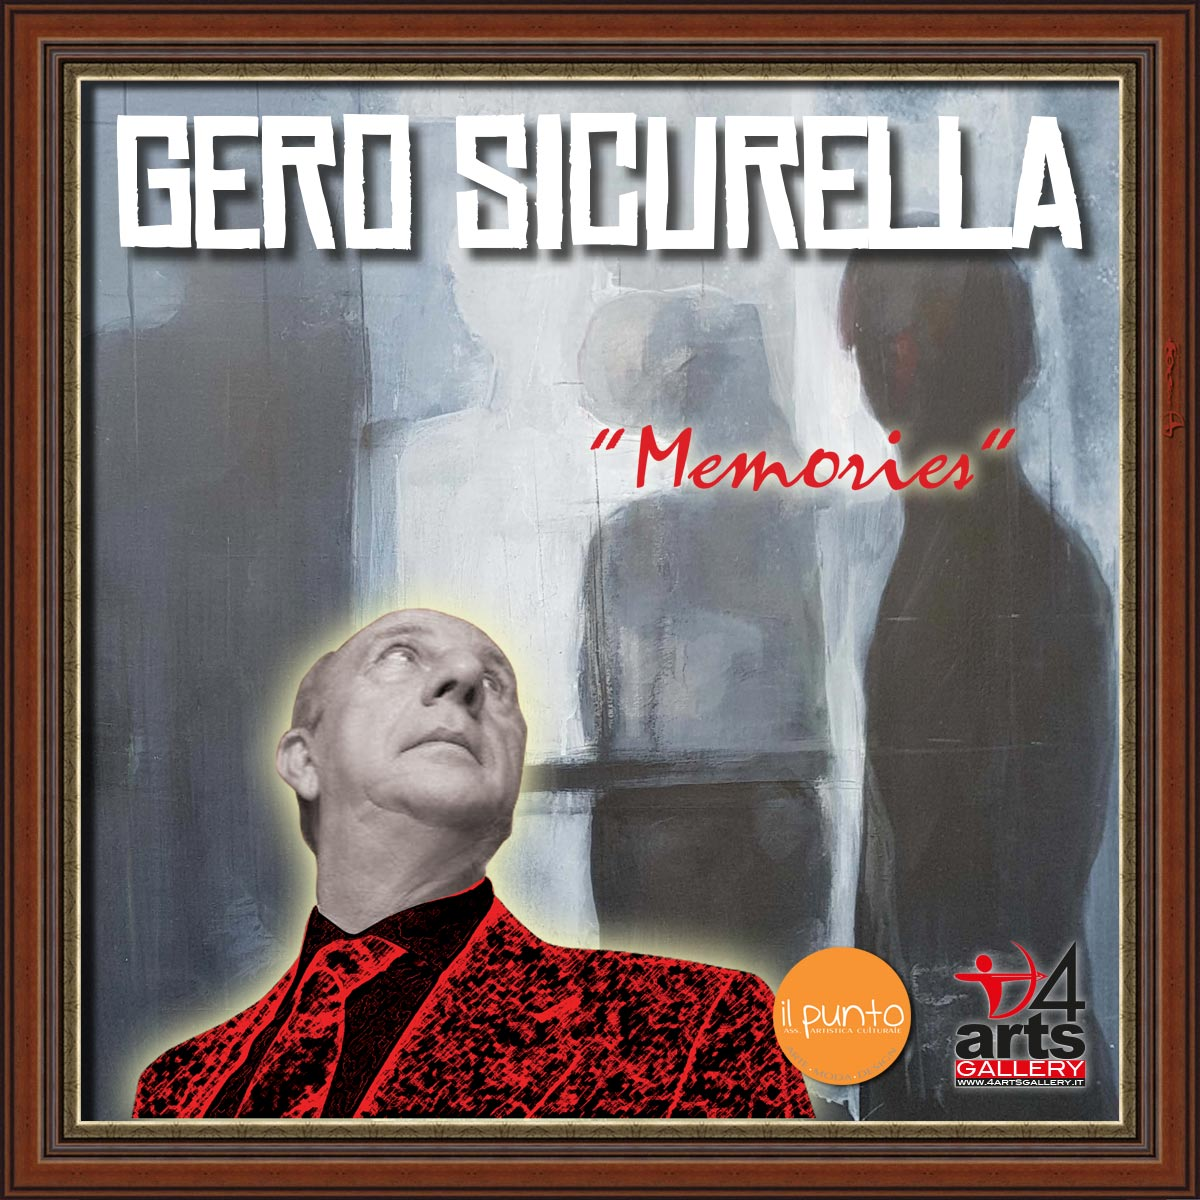 """Memories: Gero Sicurella """"One day only"""" in 4ARTS Gallery"""